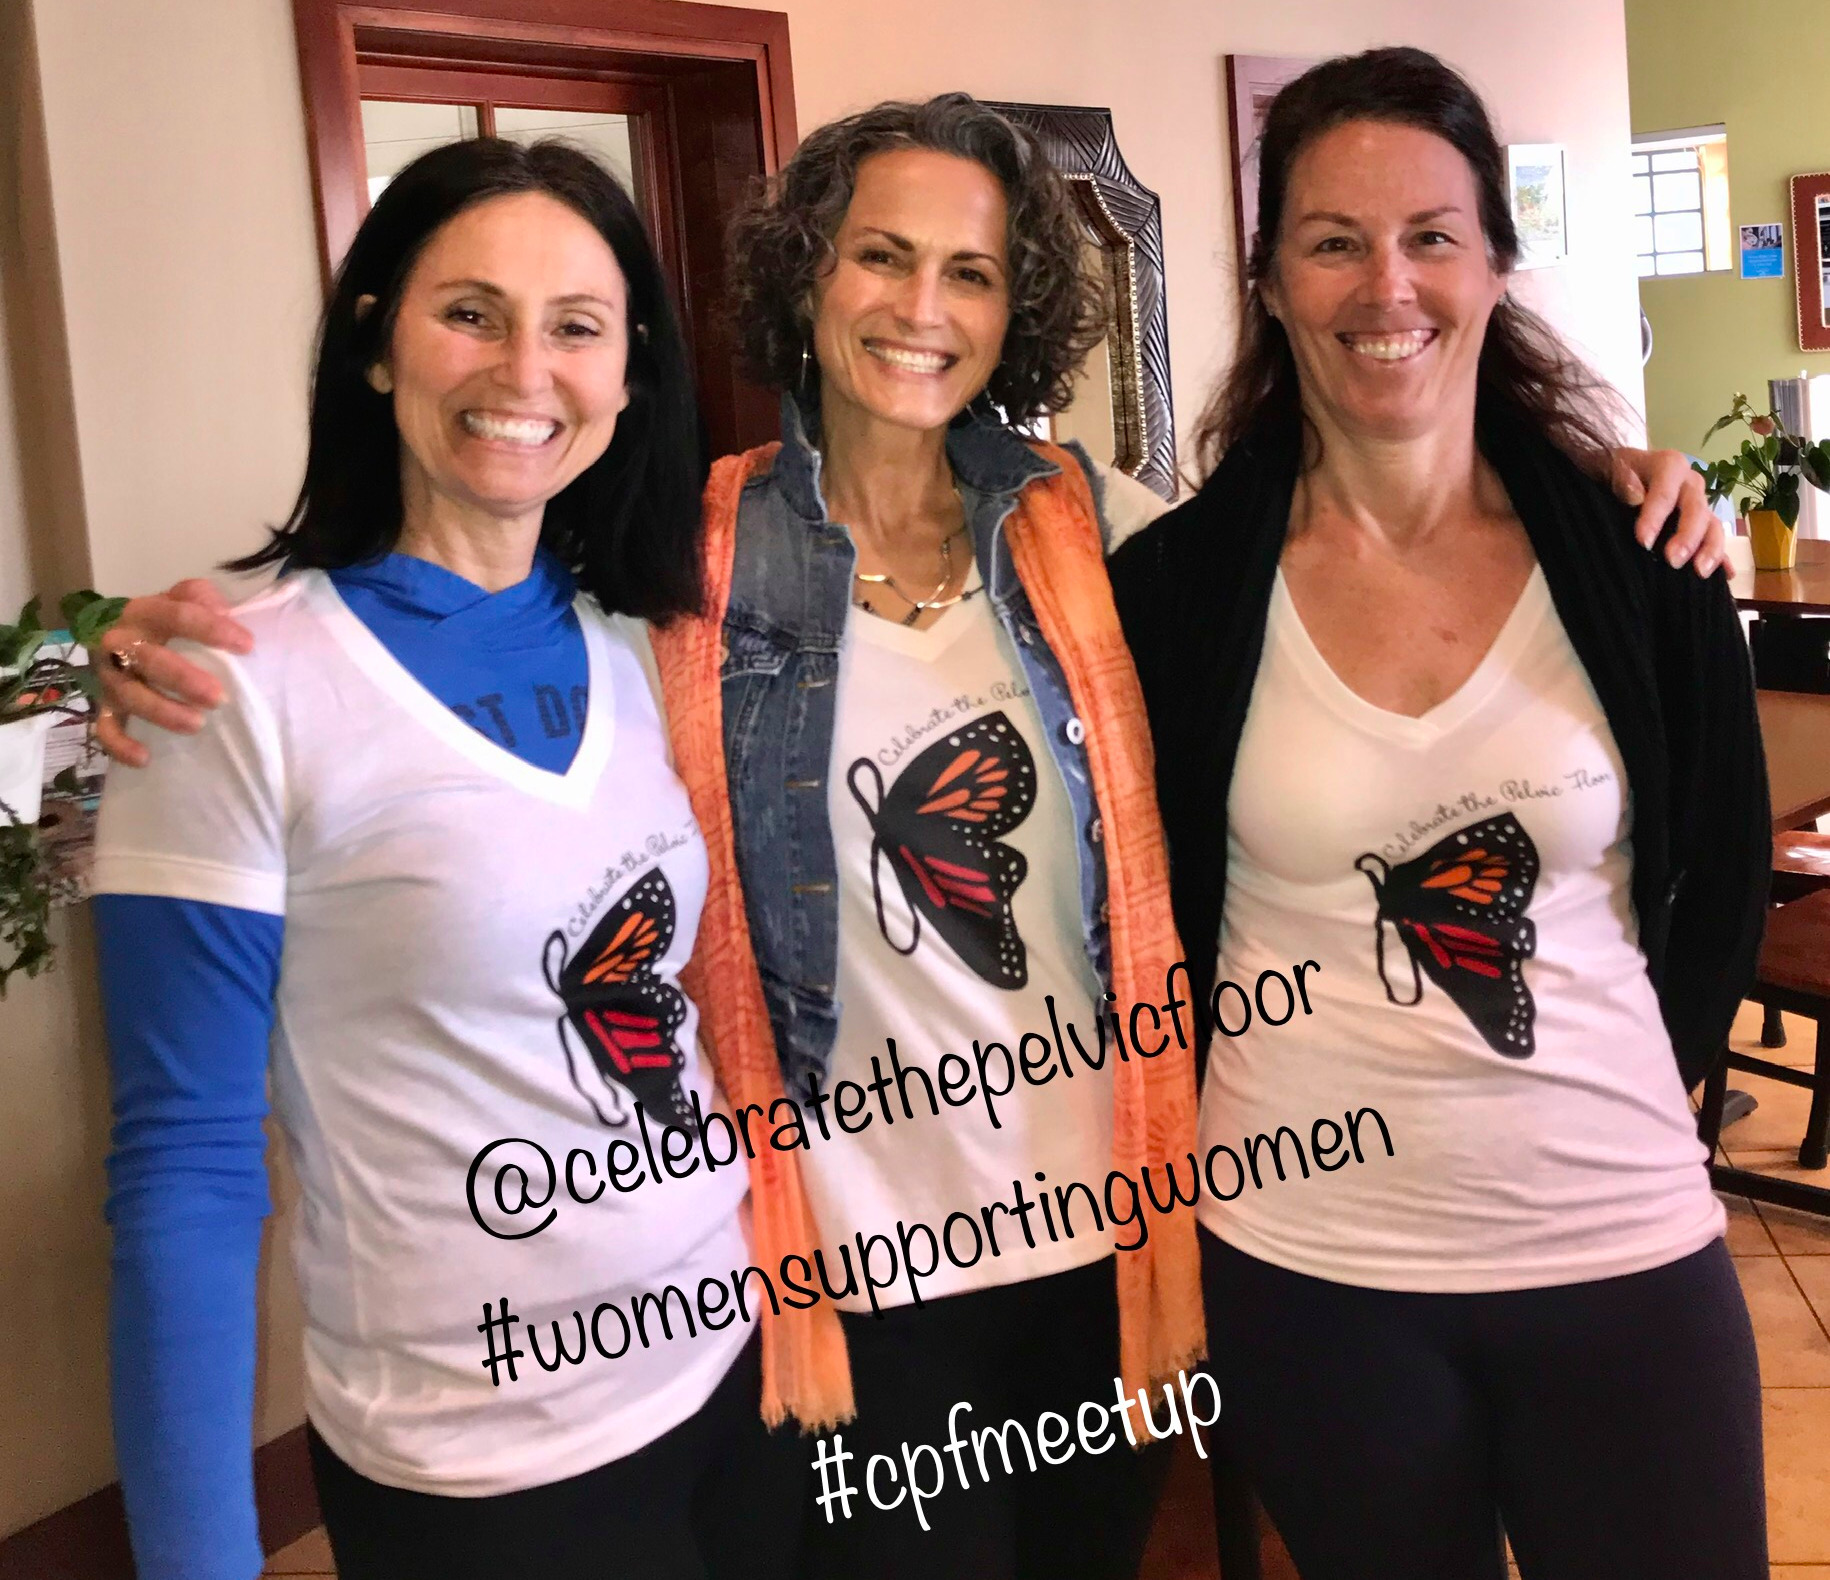 image of 3 happy women smiling at a Celebrate the Pelvic Floor event